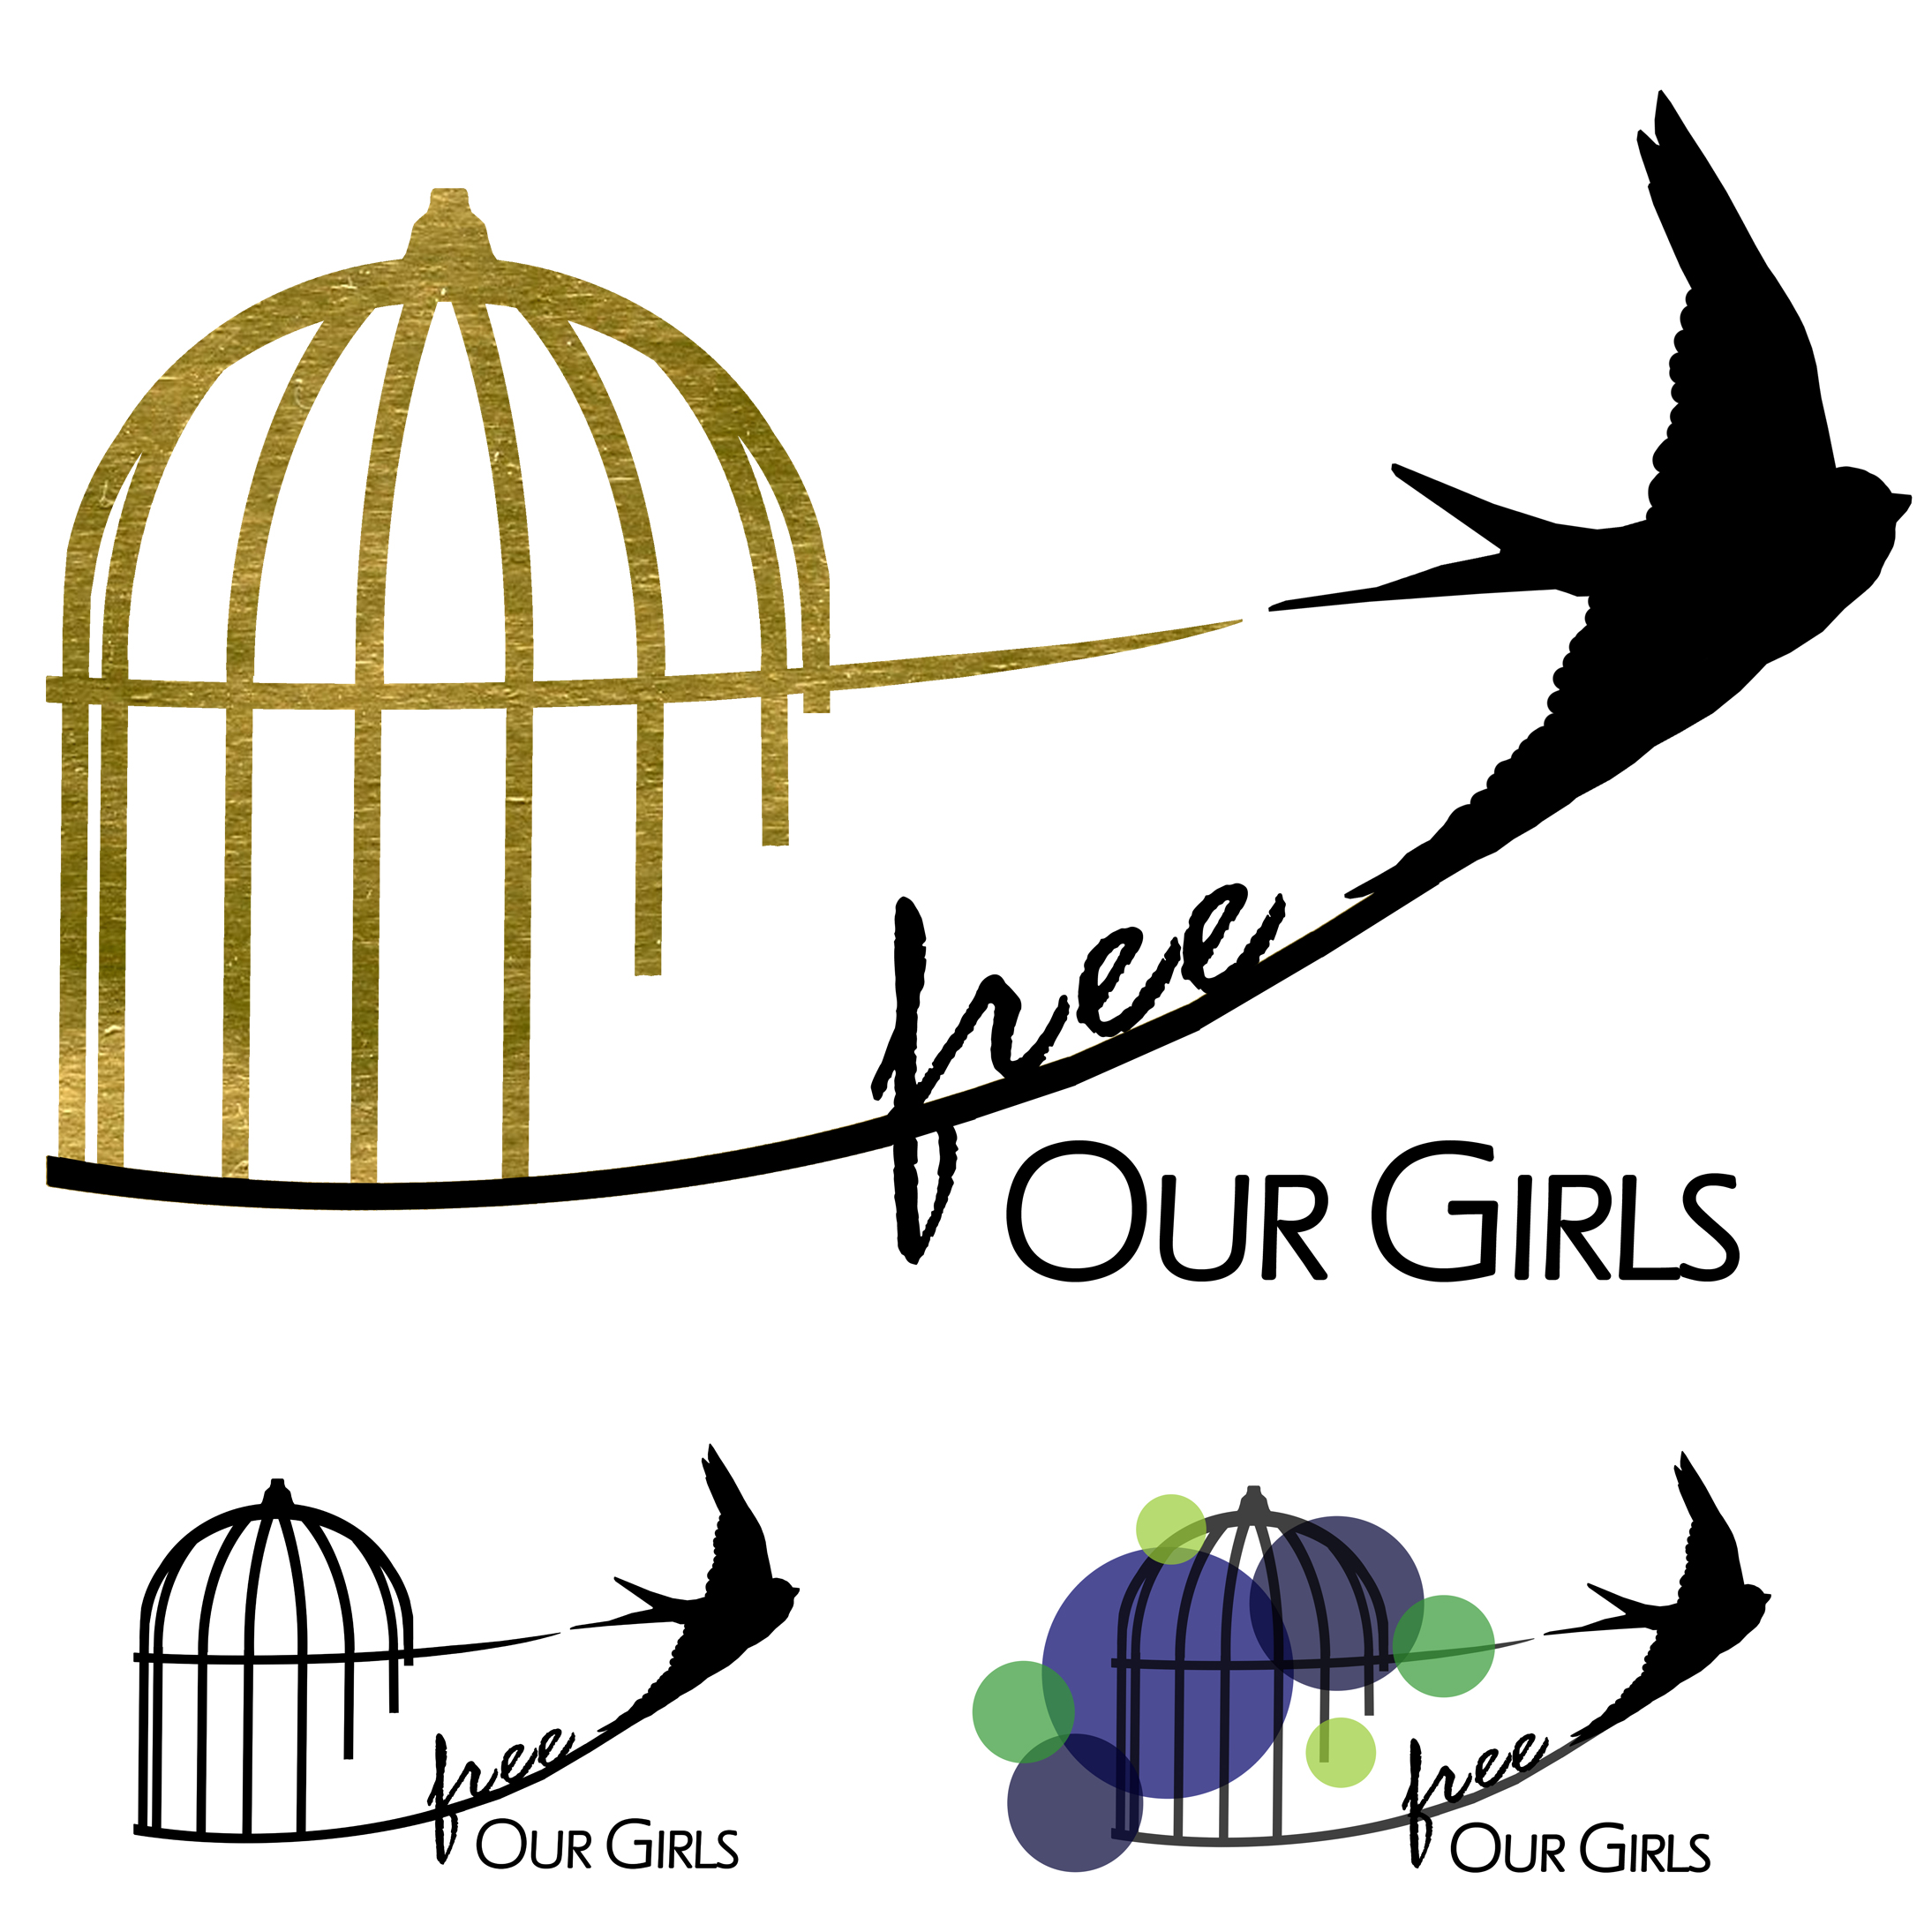 Free Our Girls logo design